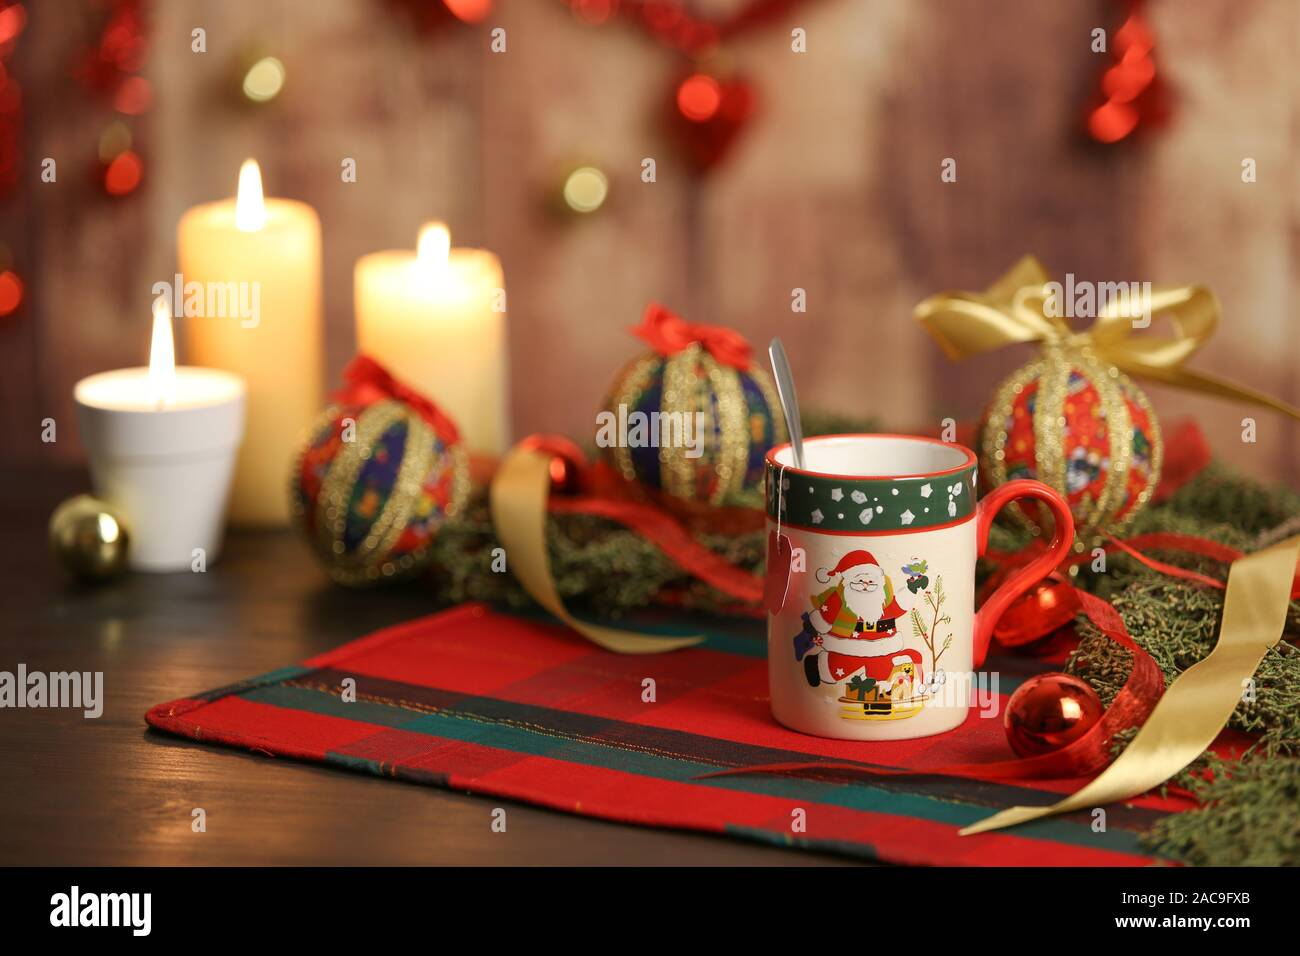 Christmas Mug With Empty Tea Label On Christmas Table Cloth With Around Pine Branches Decoupage Baubles With Lit Candles And Hanging Christmas Decor Stock Photo Alamy